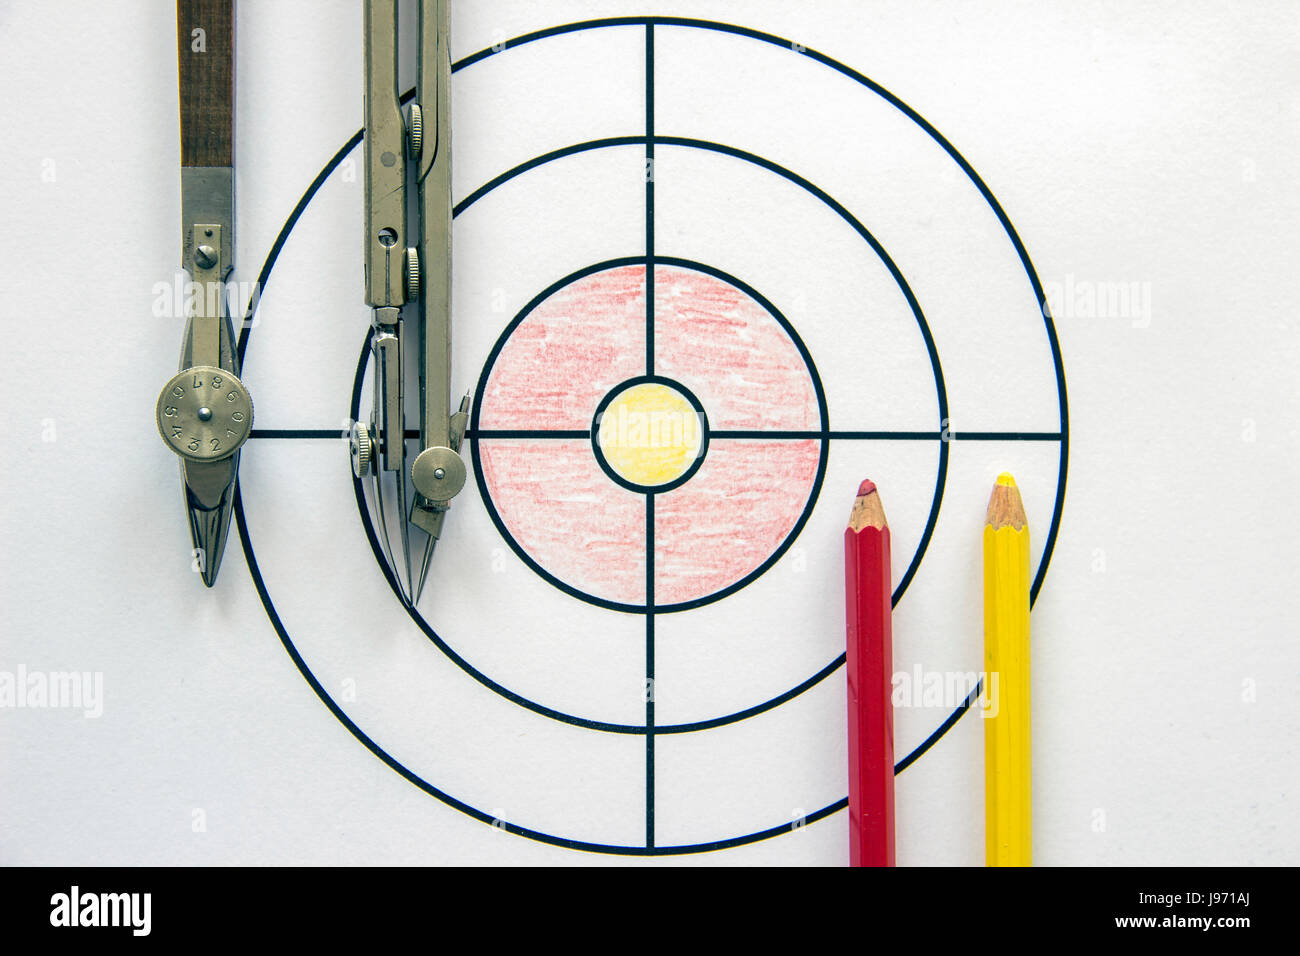 Target and drawing tools - Stock Image